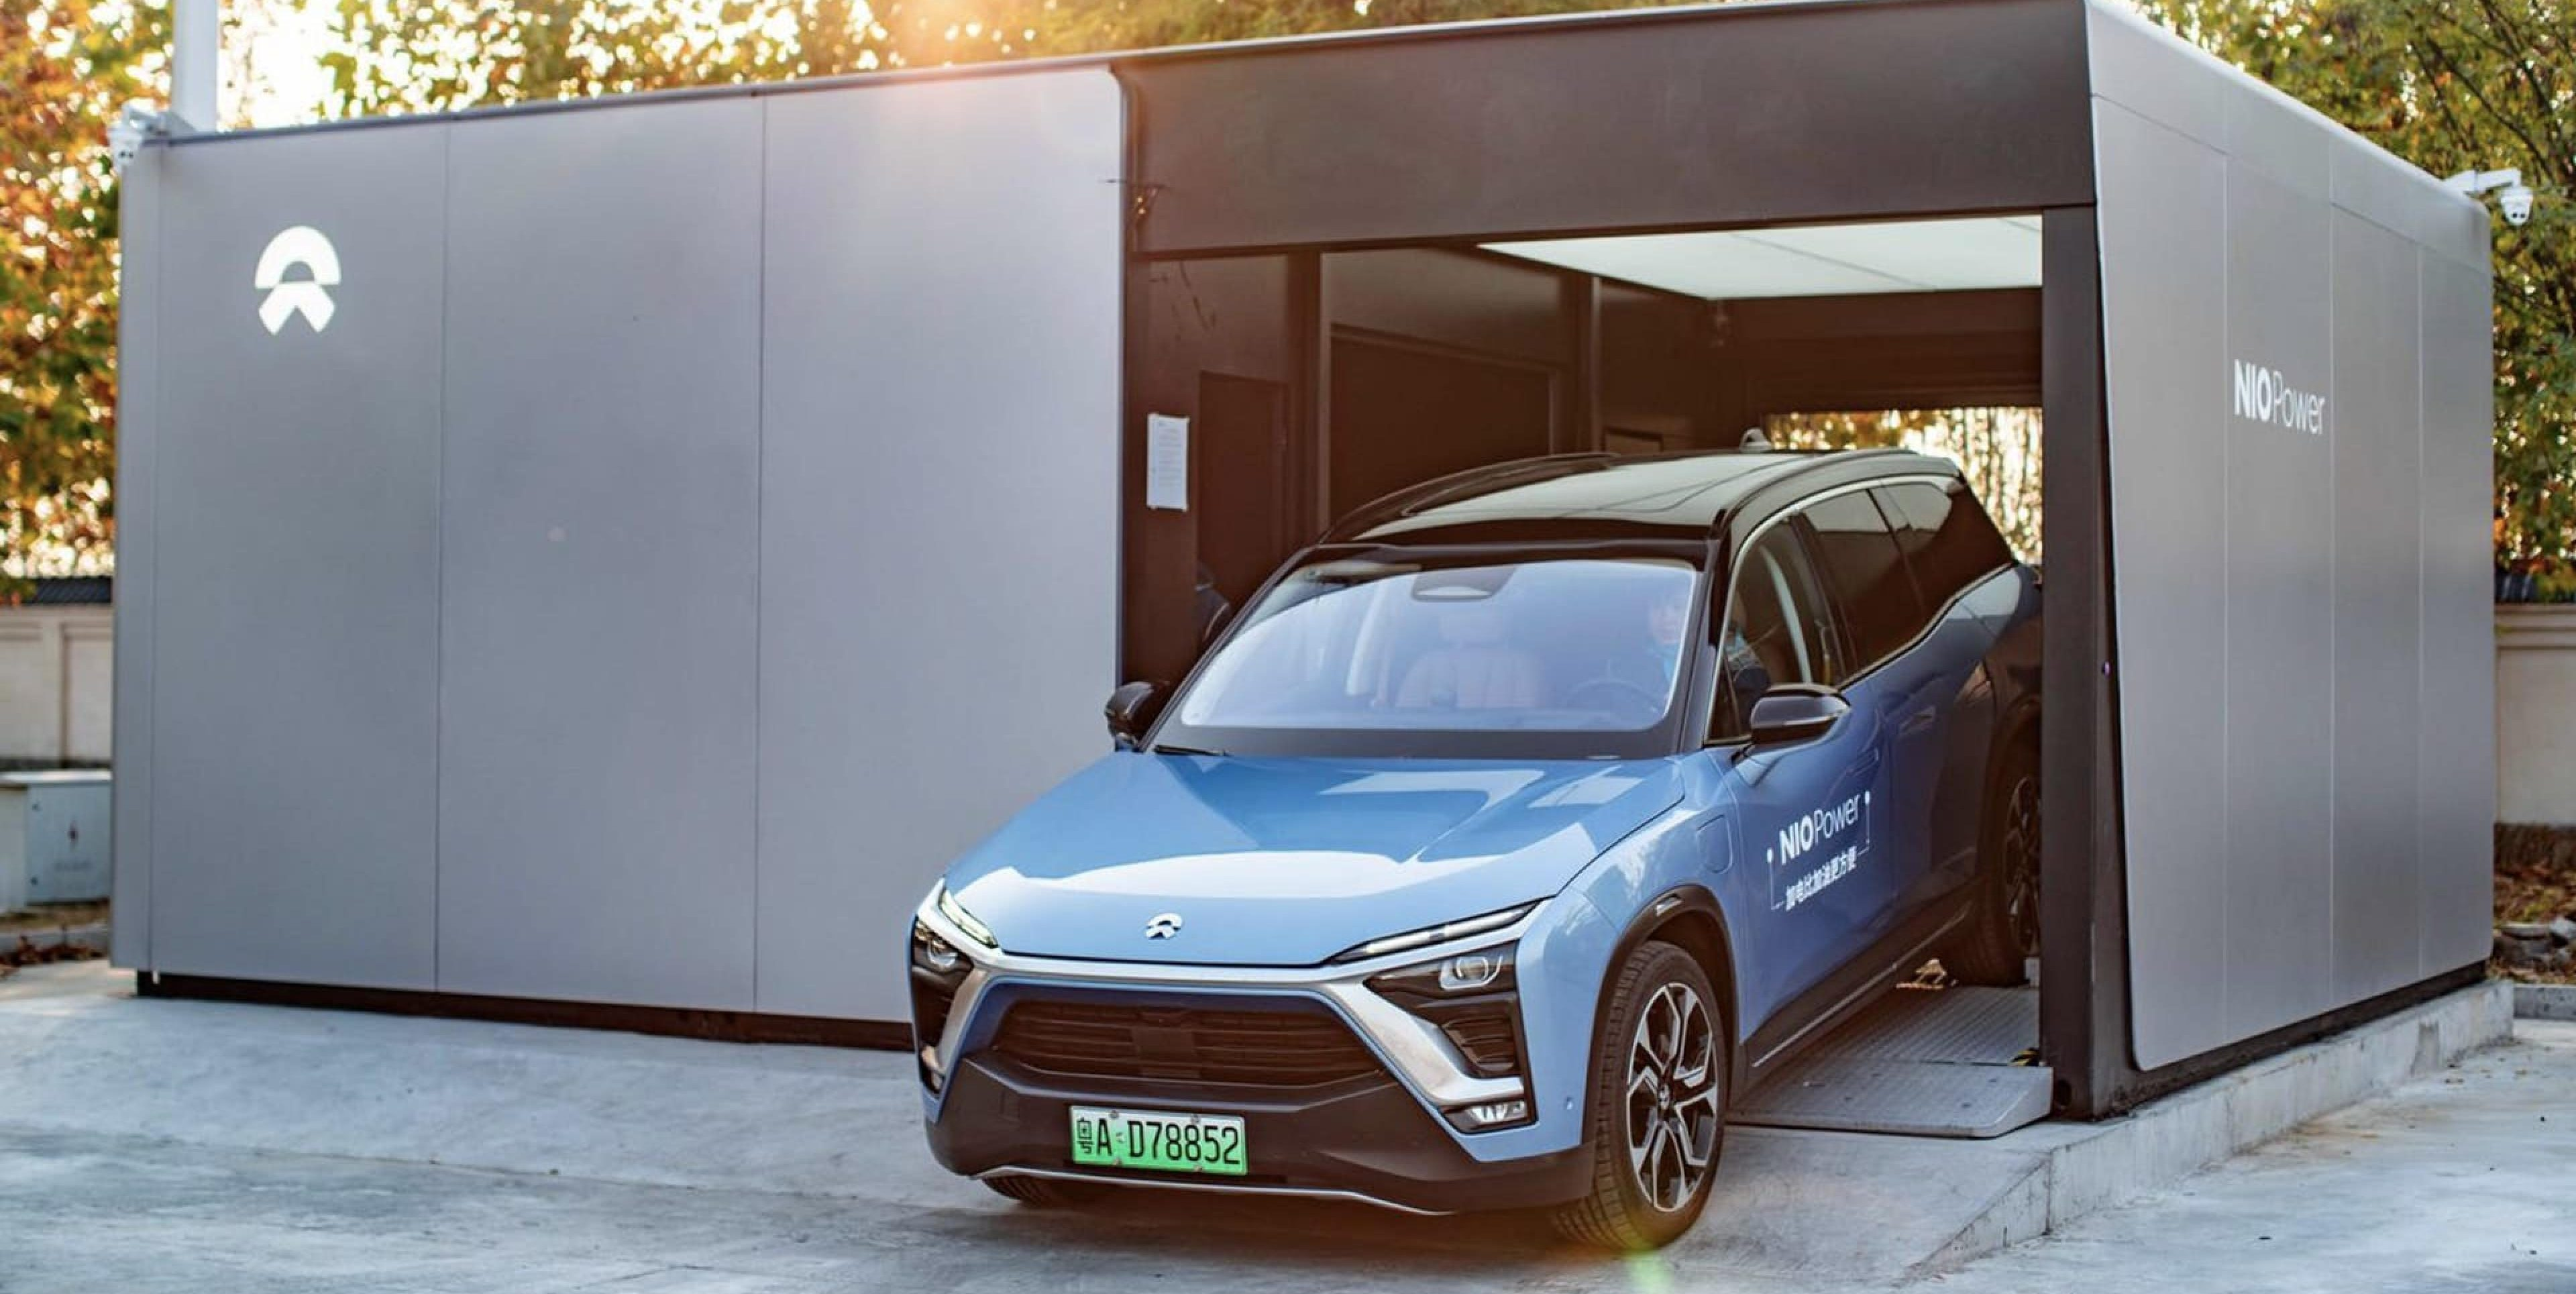 Nio might have figured out battery swap for electric cars as it completes 500,000 swaps Thumbnail